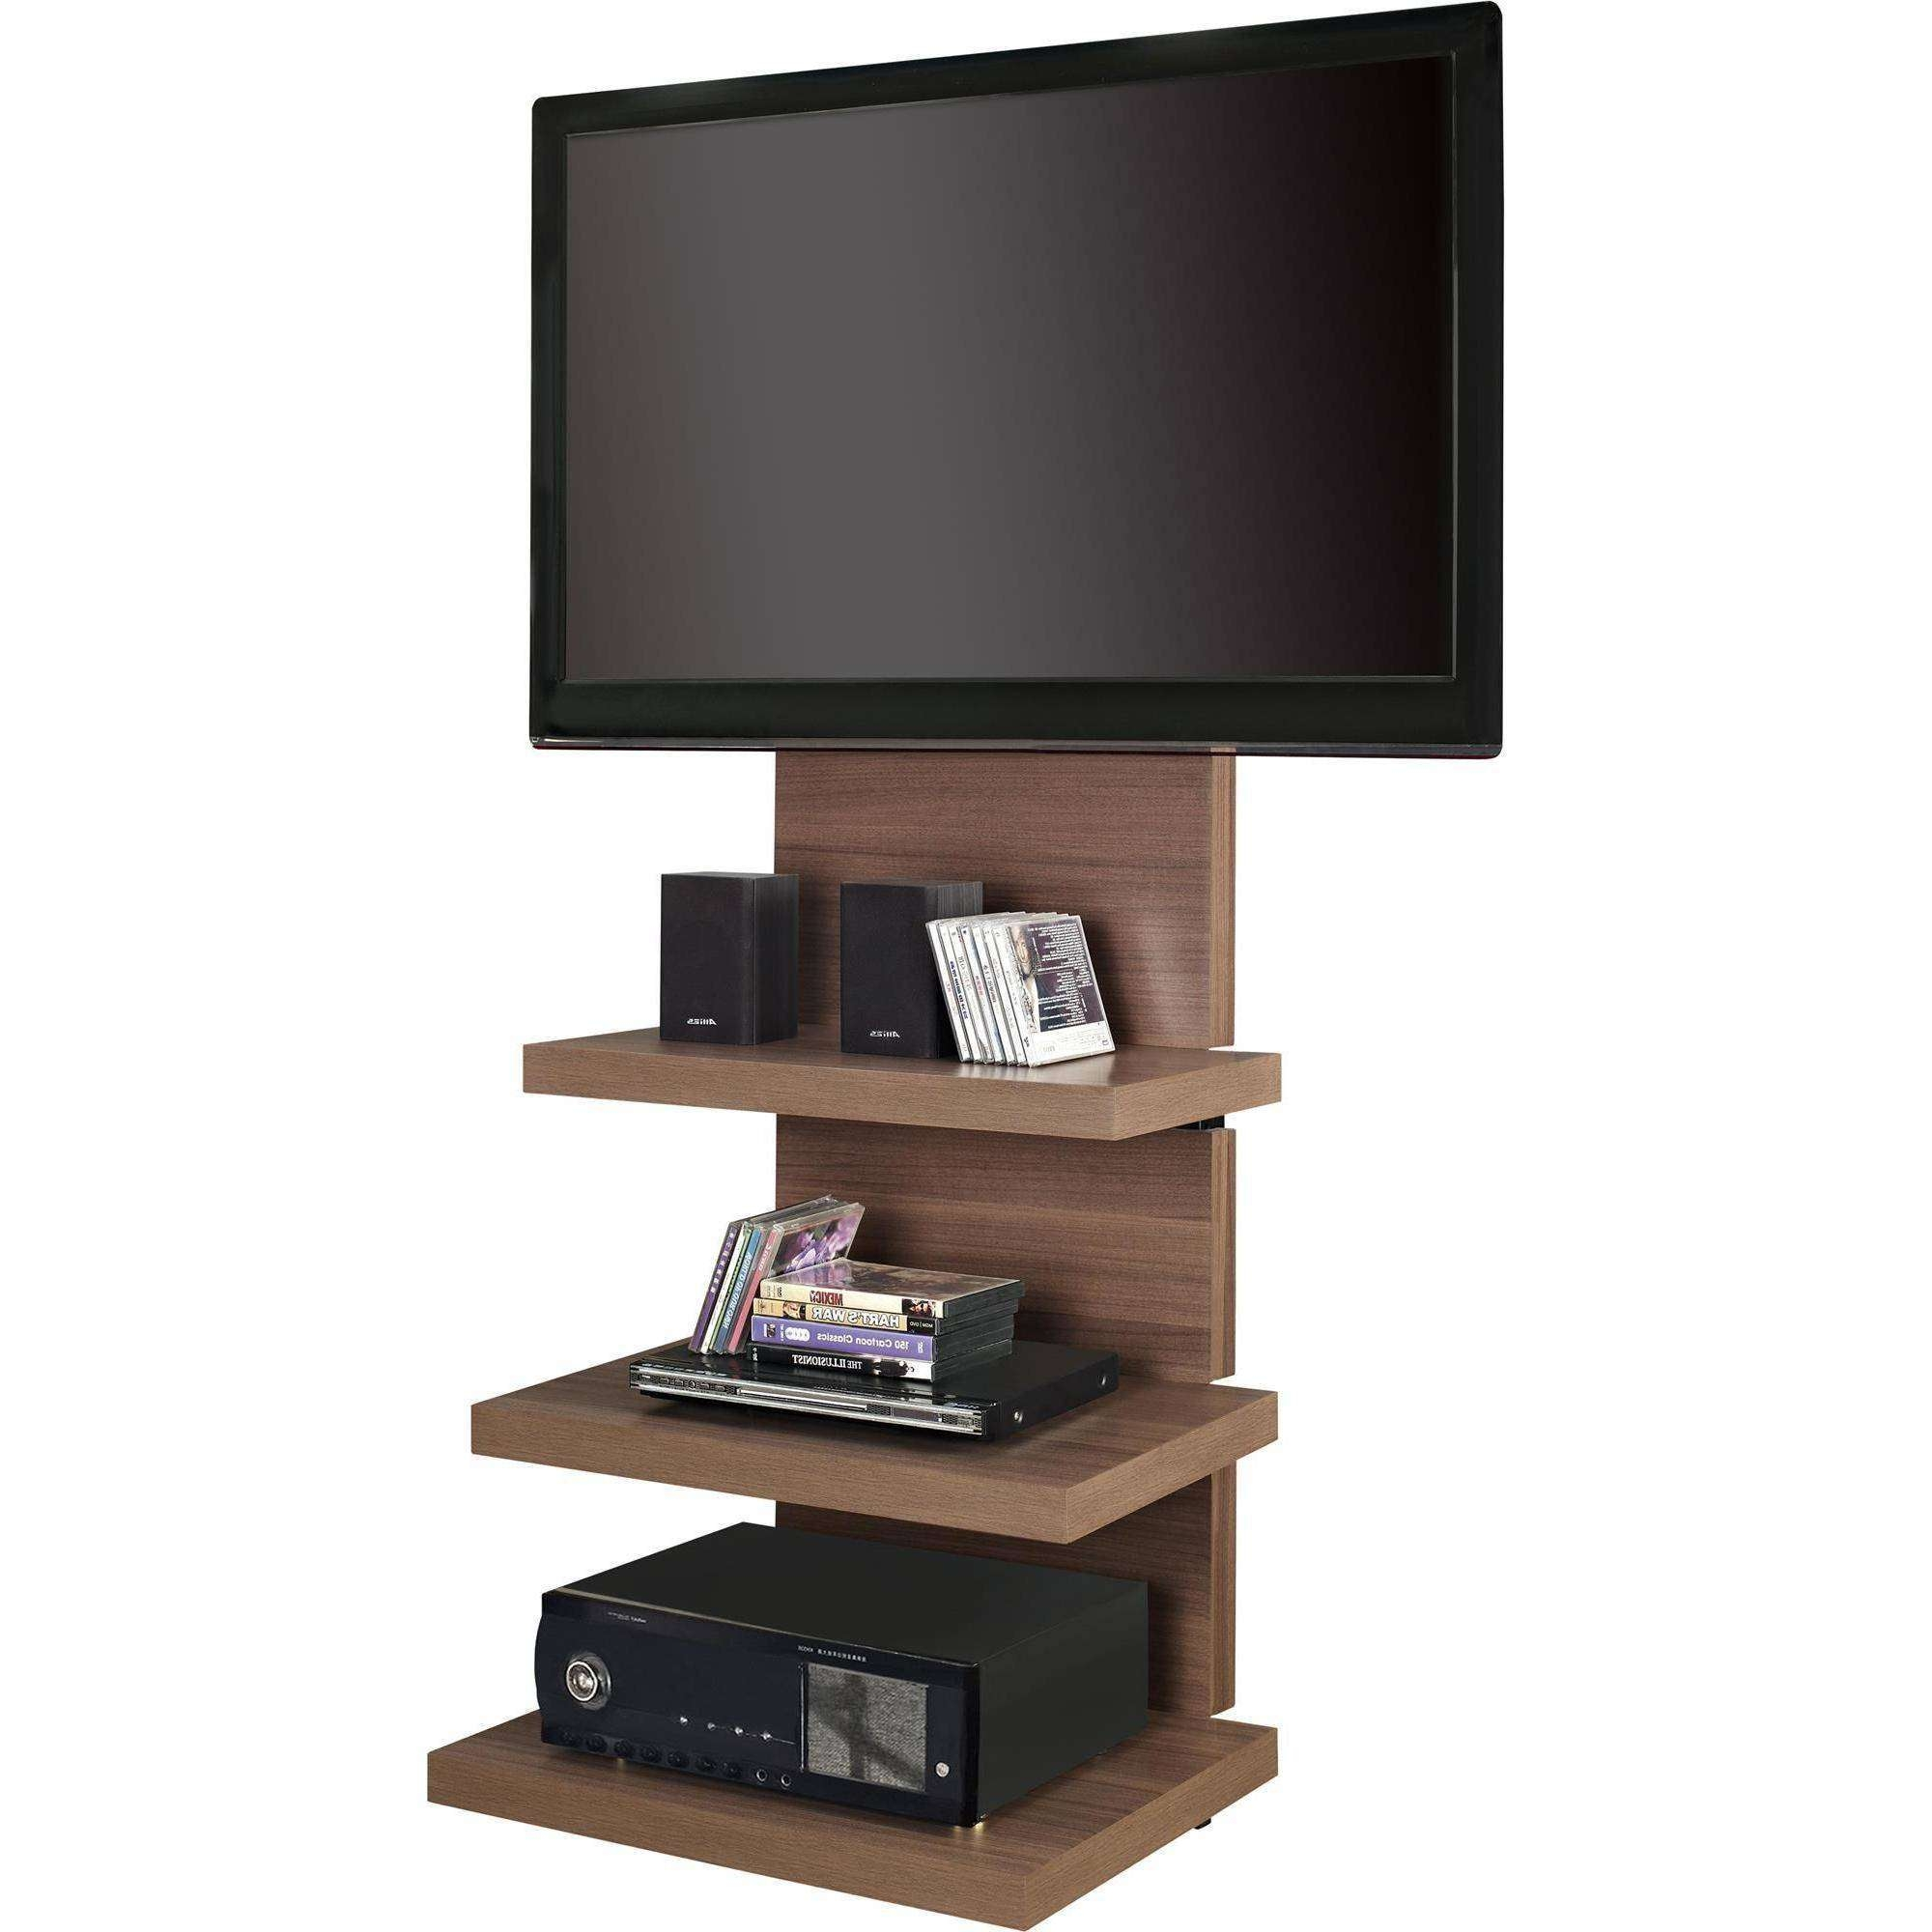 Tv : Amazing Wood Tv Stands With Swivel Mount Ameriwood Home With Wood Tv Stands With Swivel Mount (View 4 of 15)